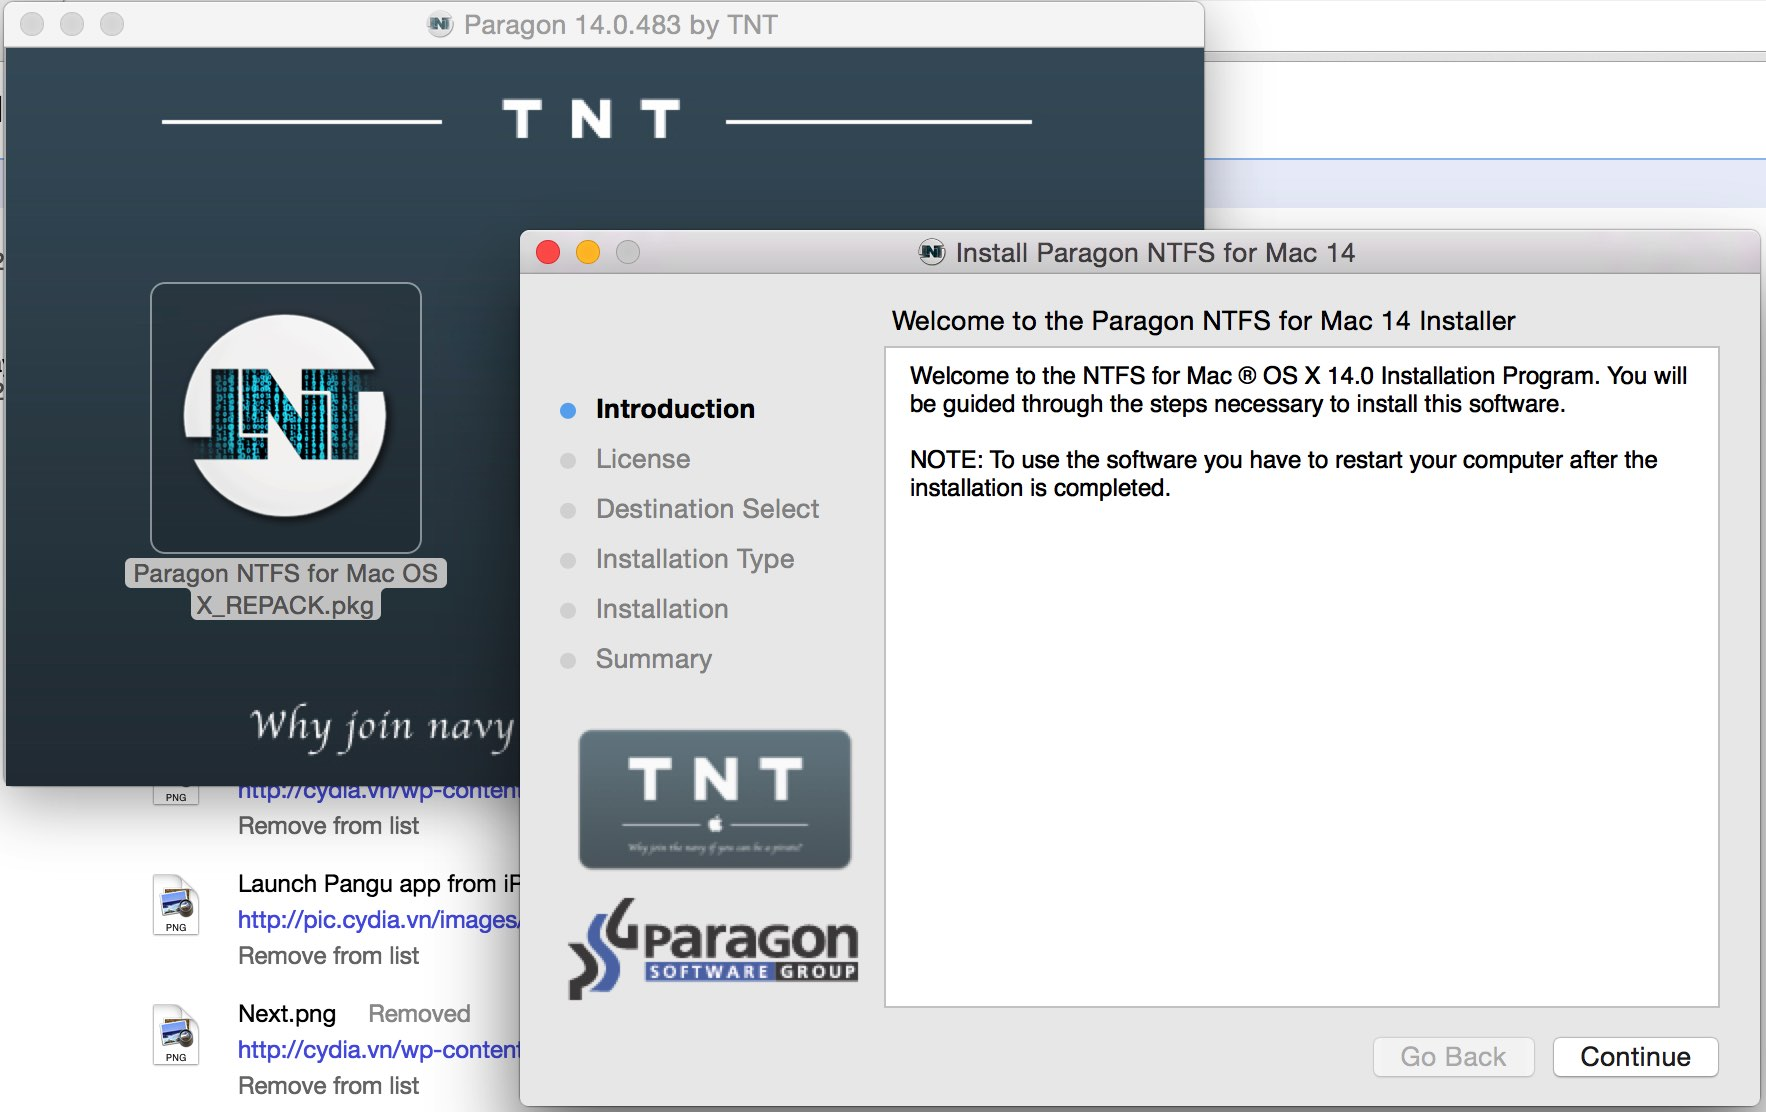 Install-Paragon-NTFS-cracked-by-TNT 3.jpg